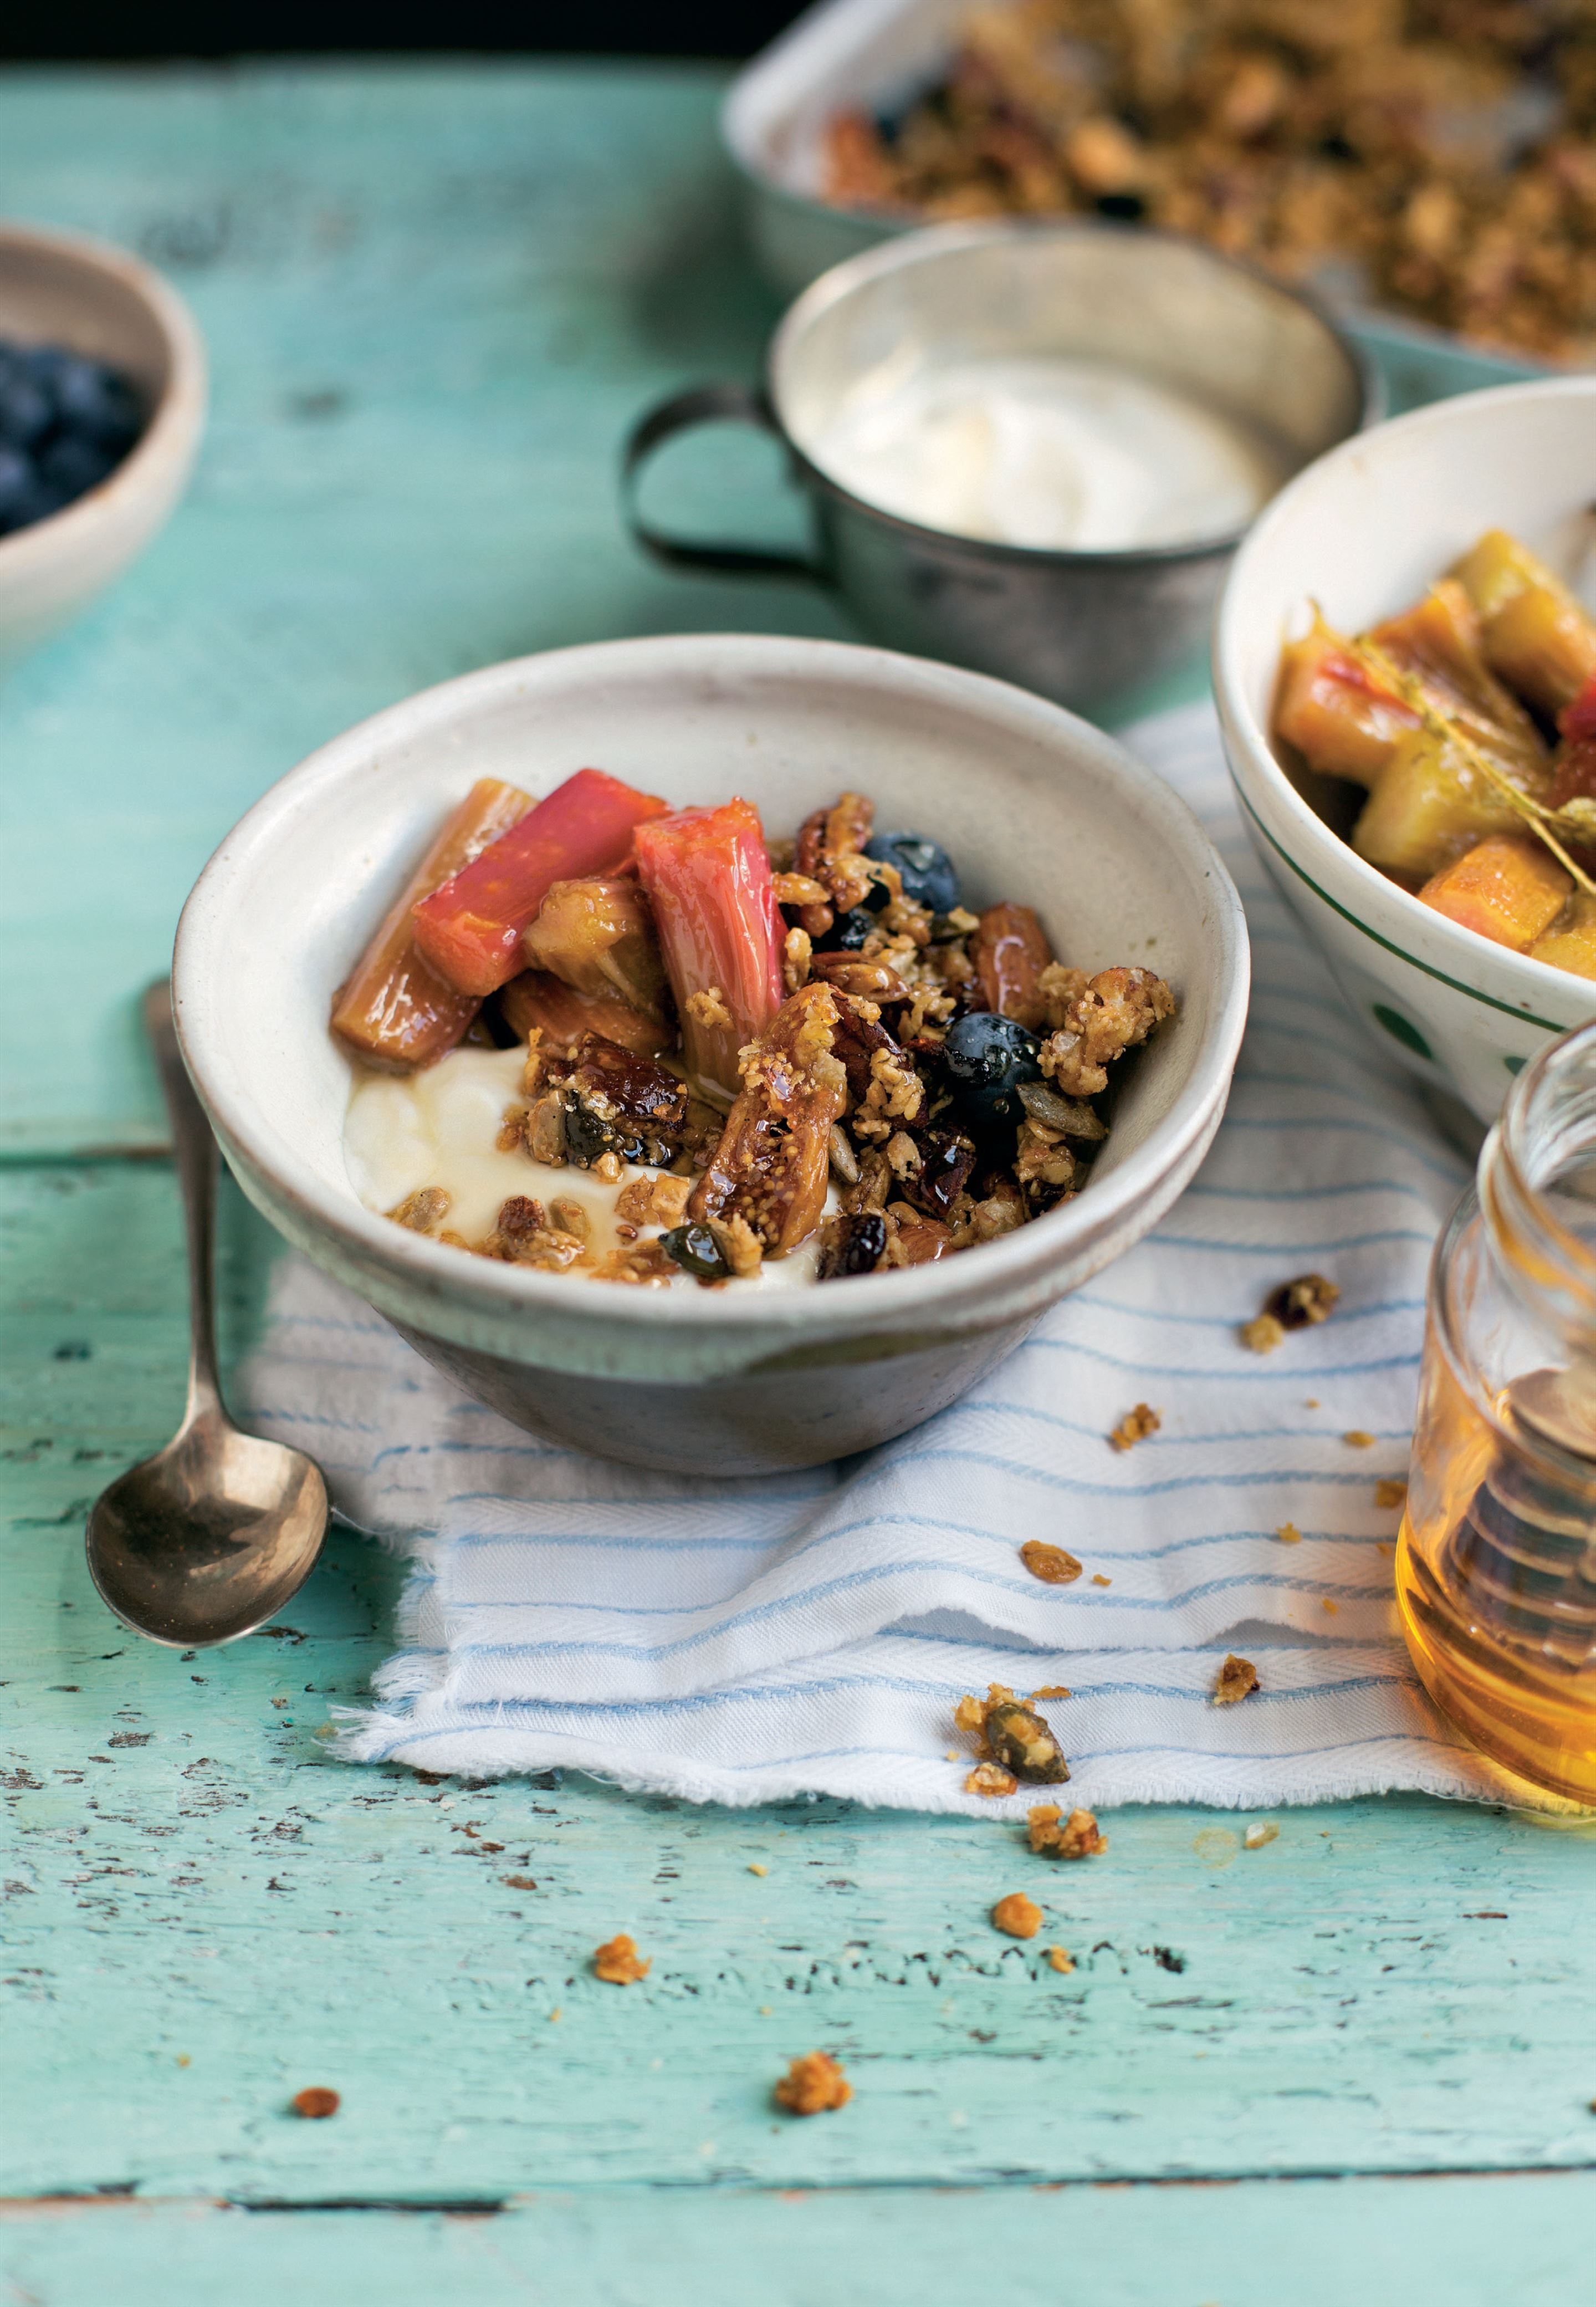 Rhubarb compote with granola, blueberries, yogurt and honey